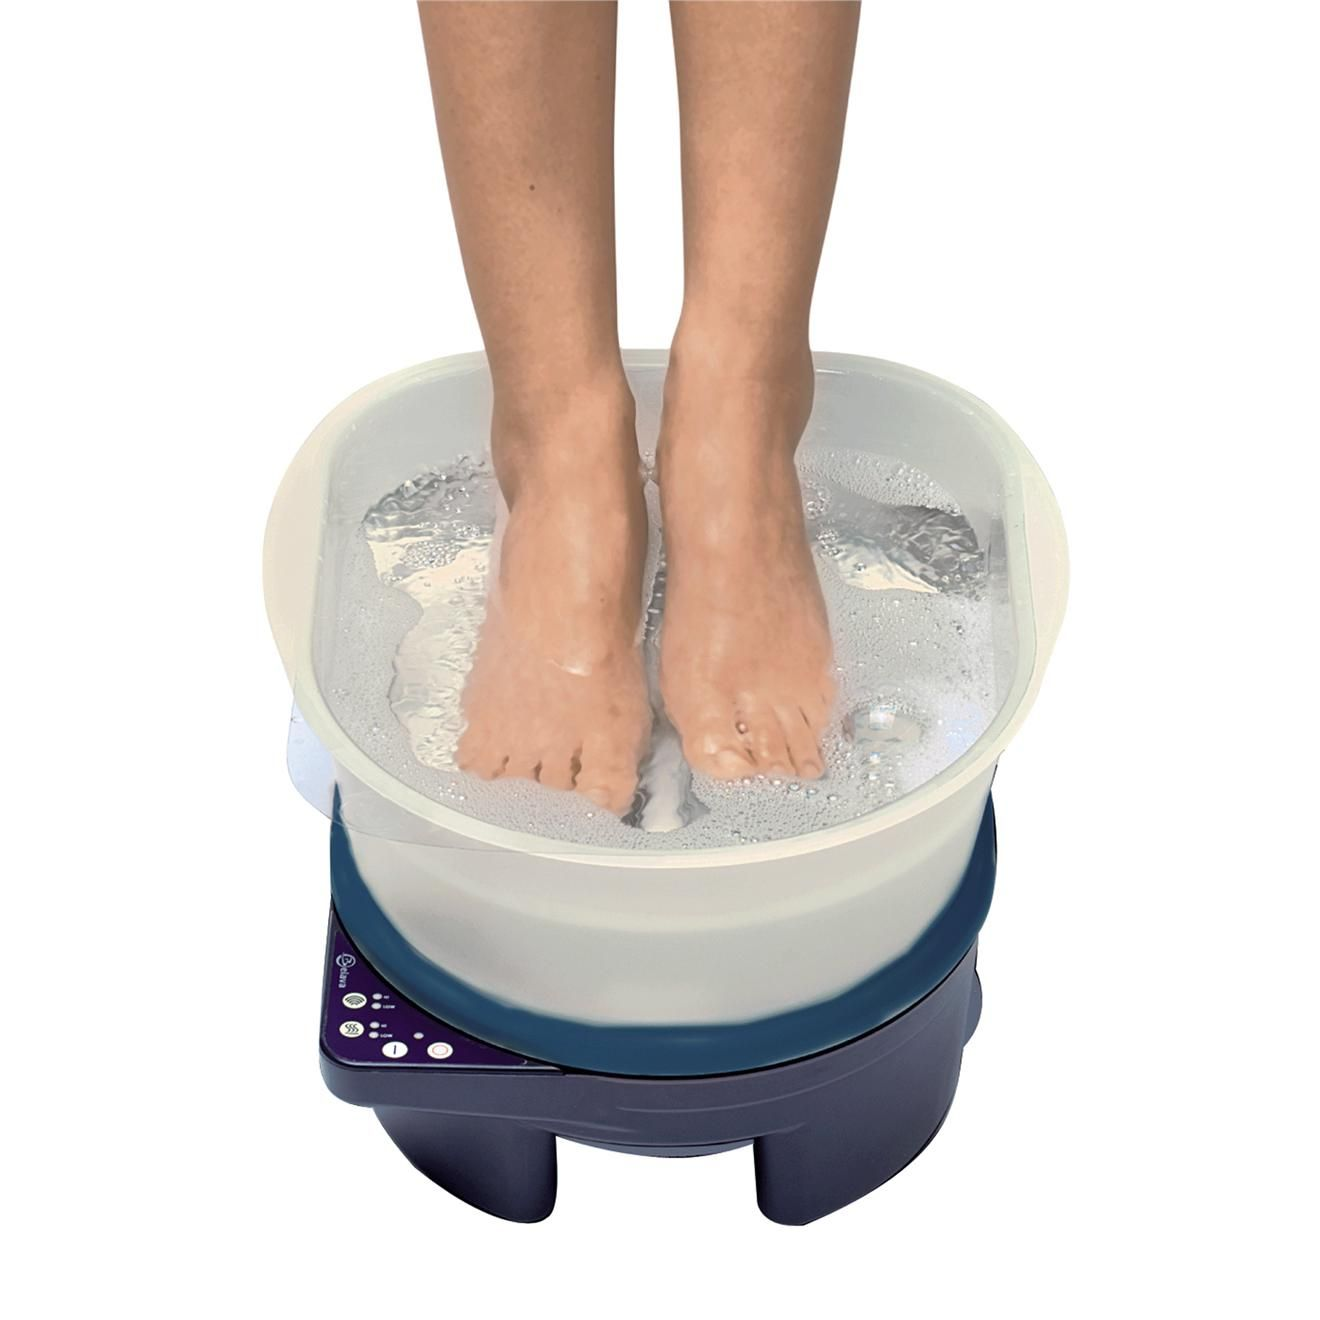 Belava Pedicure Chair Belava Pedicure Foot Massager And Heater With Tub Navy